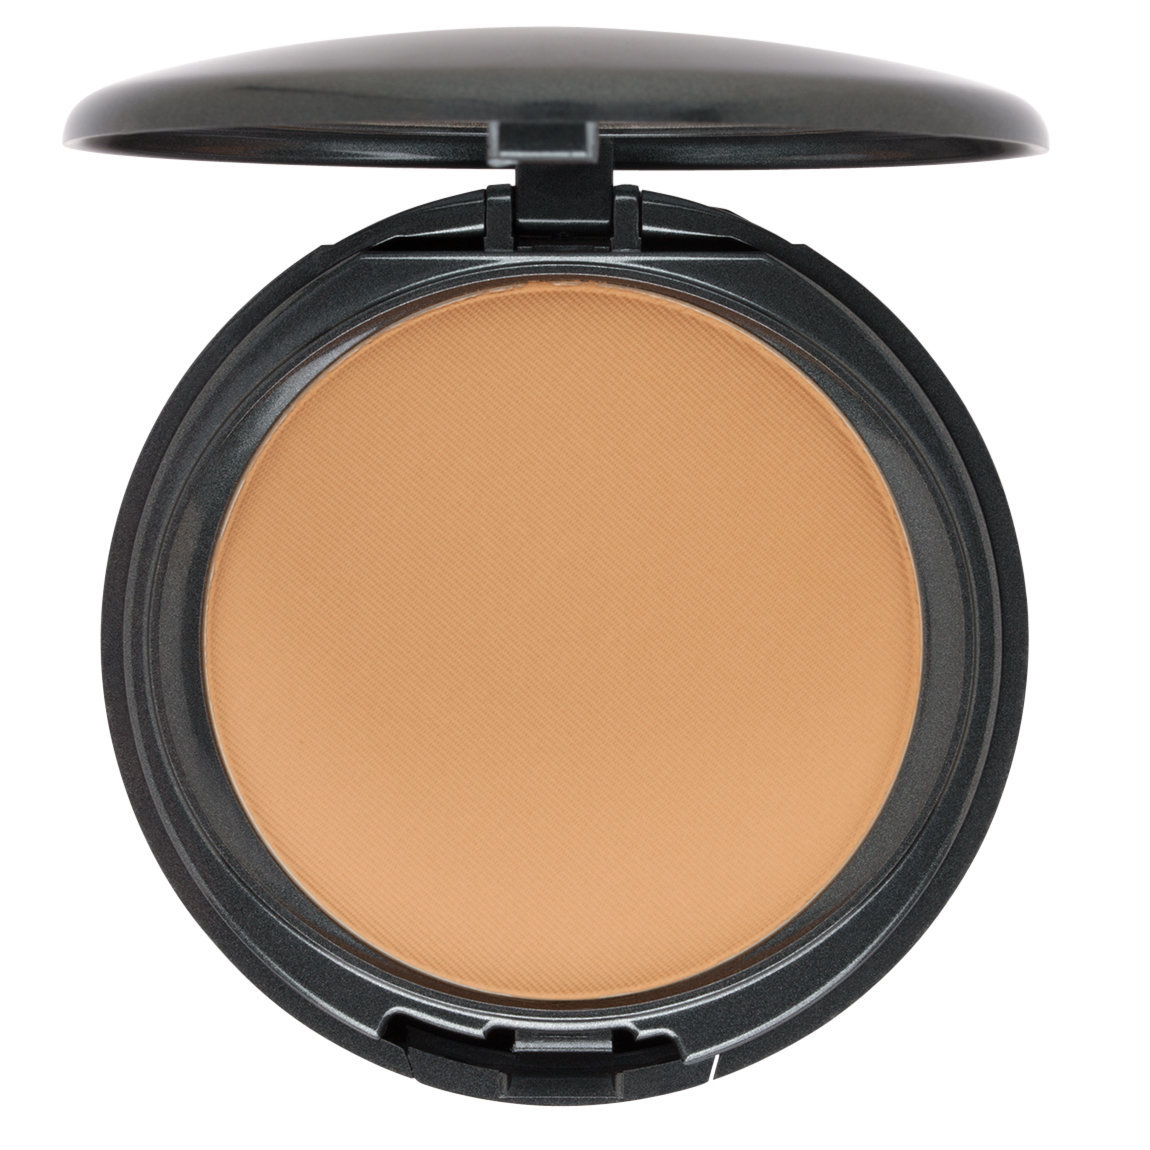 COVER   FX Pressed Mineral Foundation G+50 product swatch.